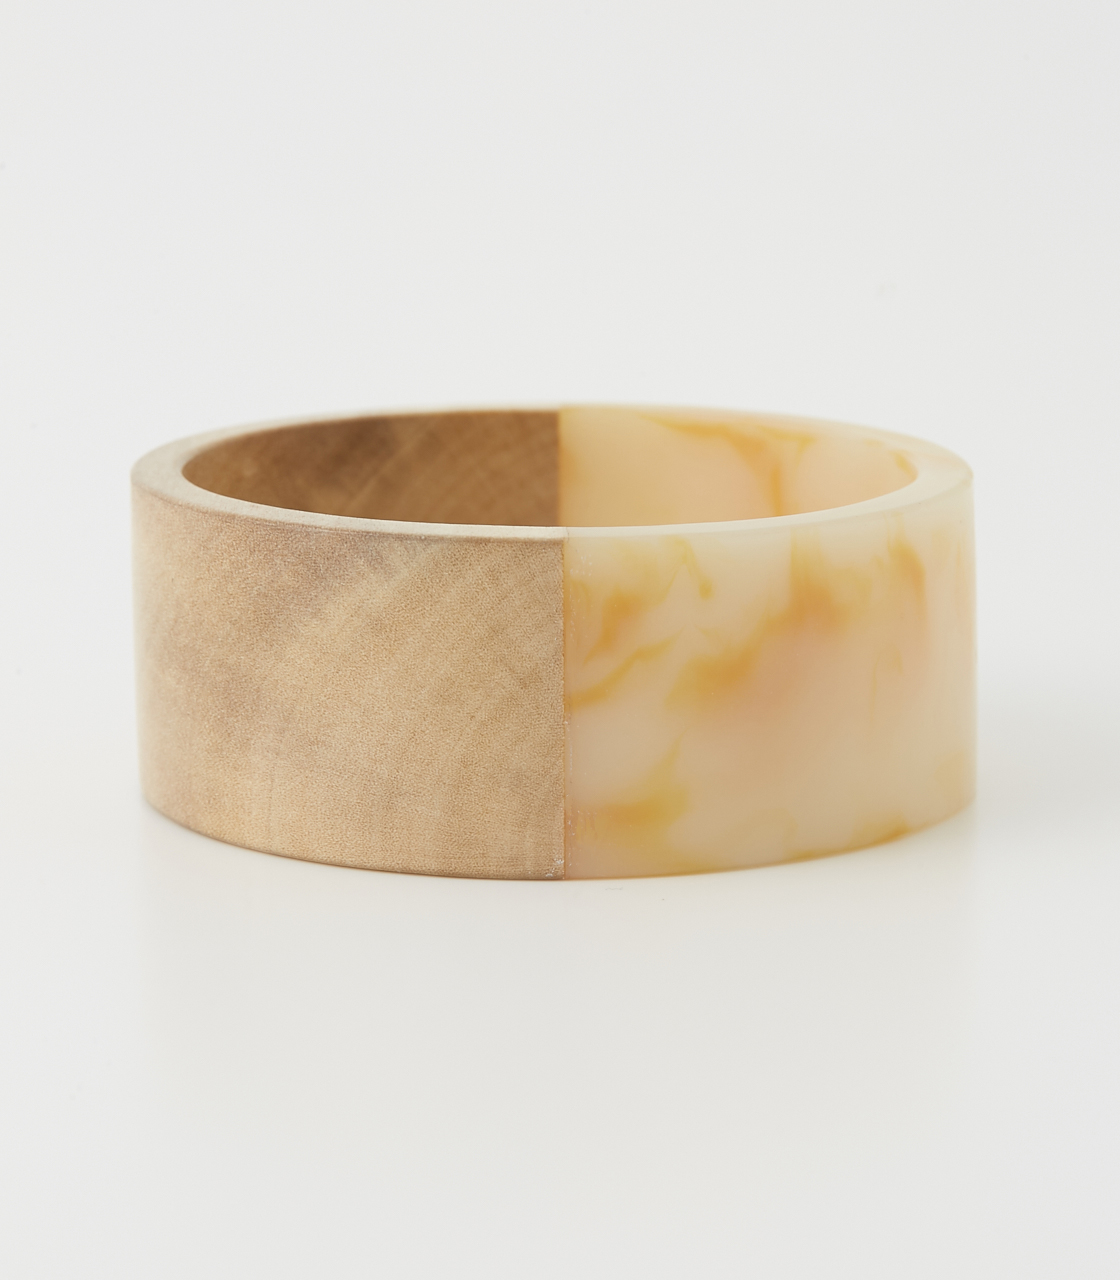 WOOD BLOCKING BANGLE 詳細画像 柄WHT 3